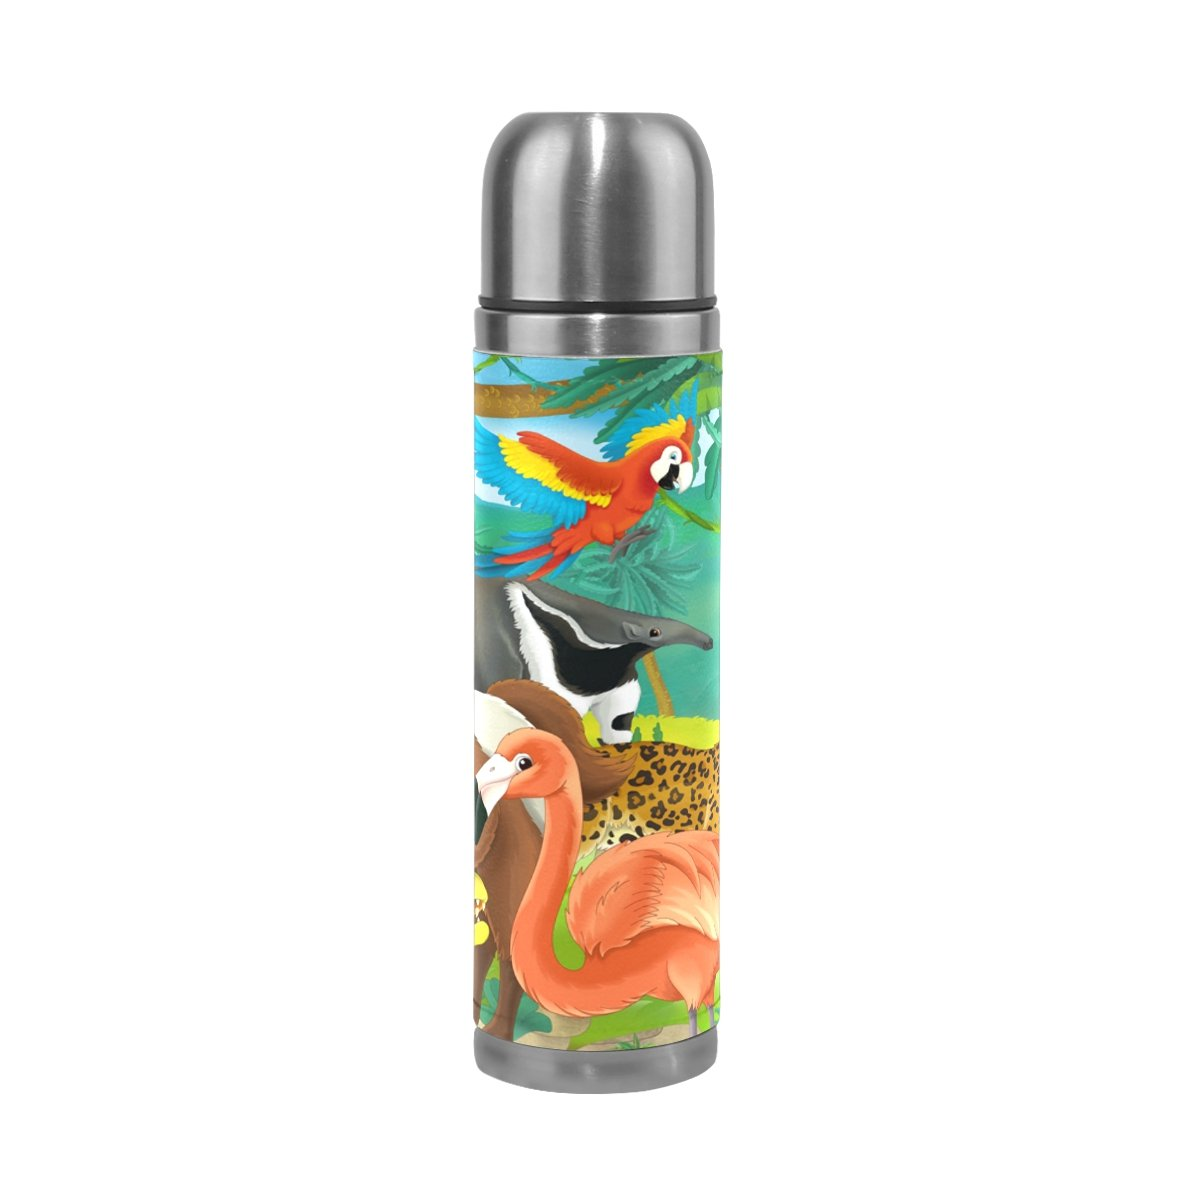 Sunlome Cartoon Jungle Animals Pattern Double Wall Vacuum Cup Insulated Stainless Steel Water Bottle Travel Mug Thermos Coffee Cup 17 oz